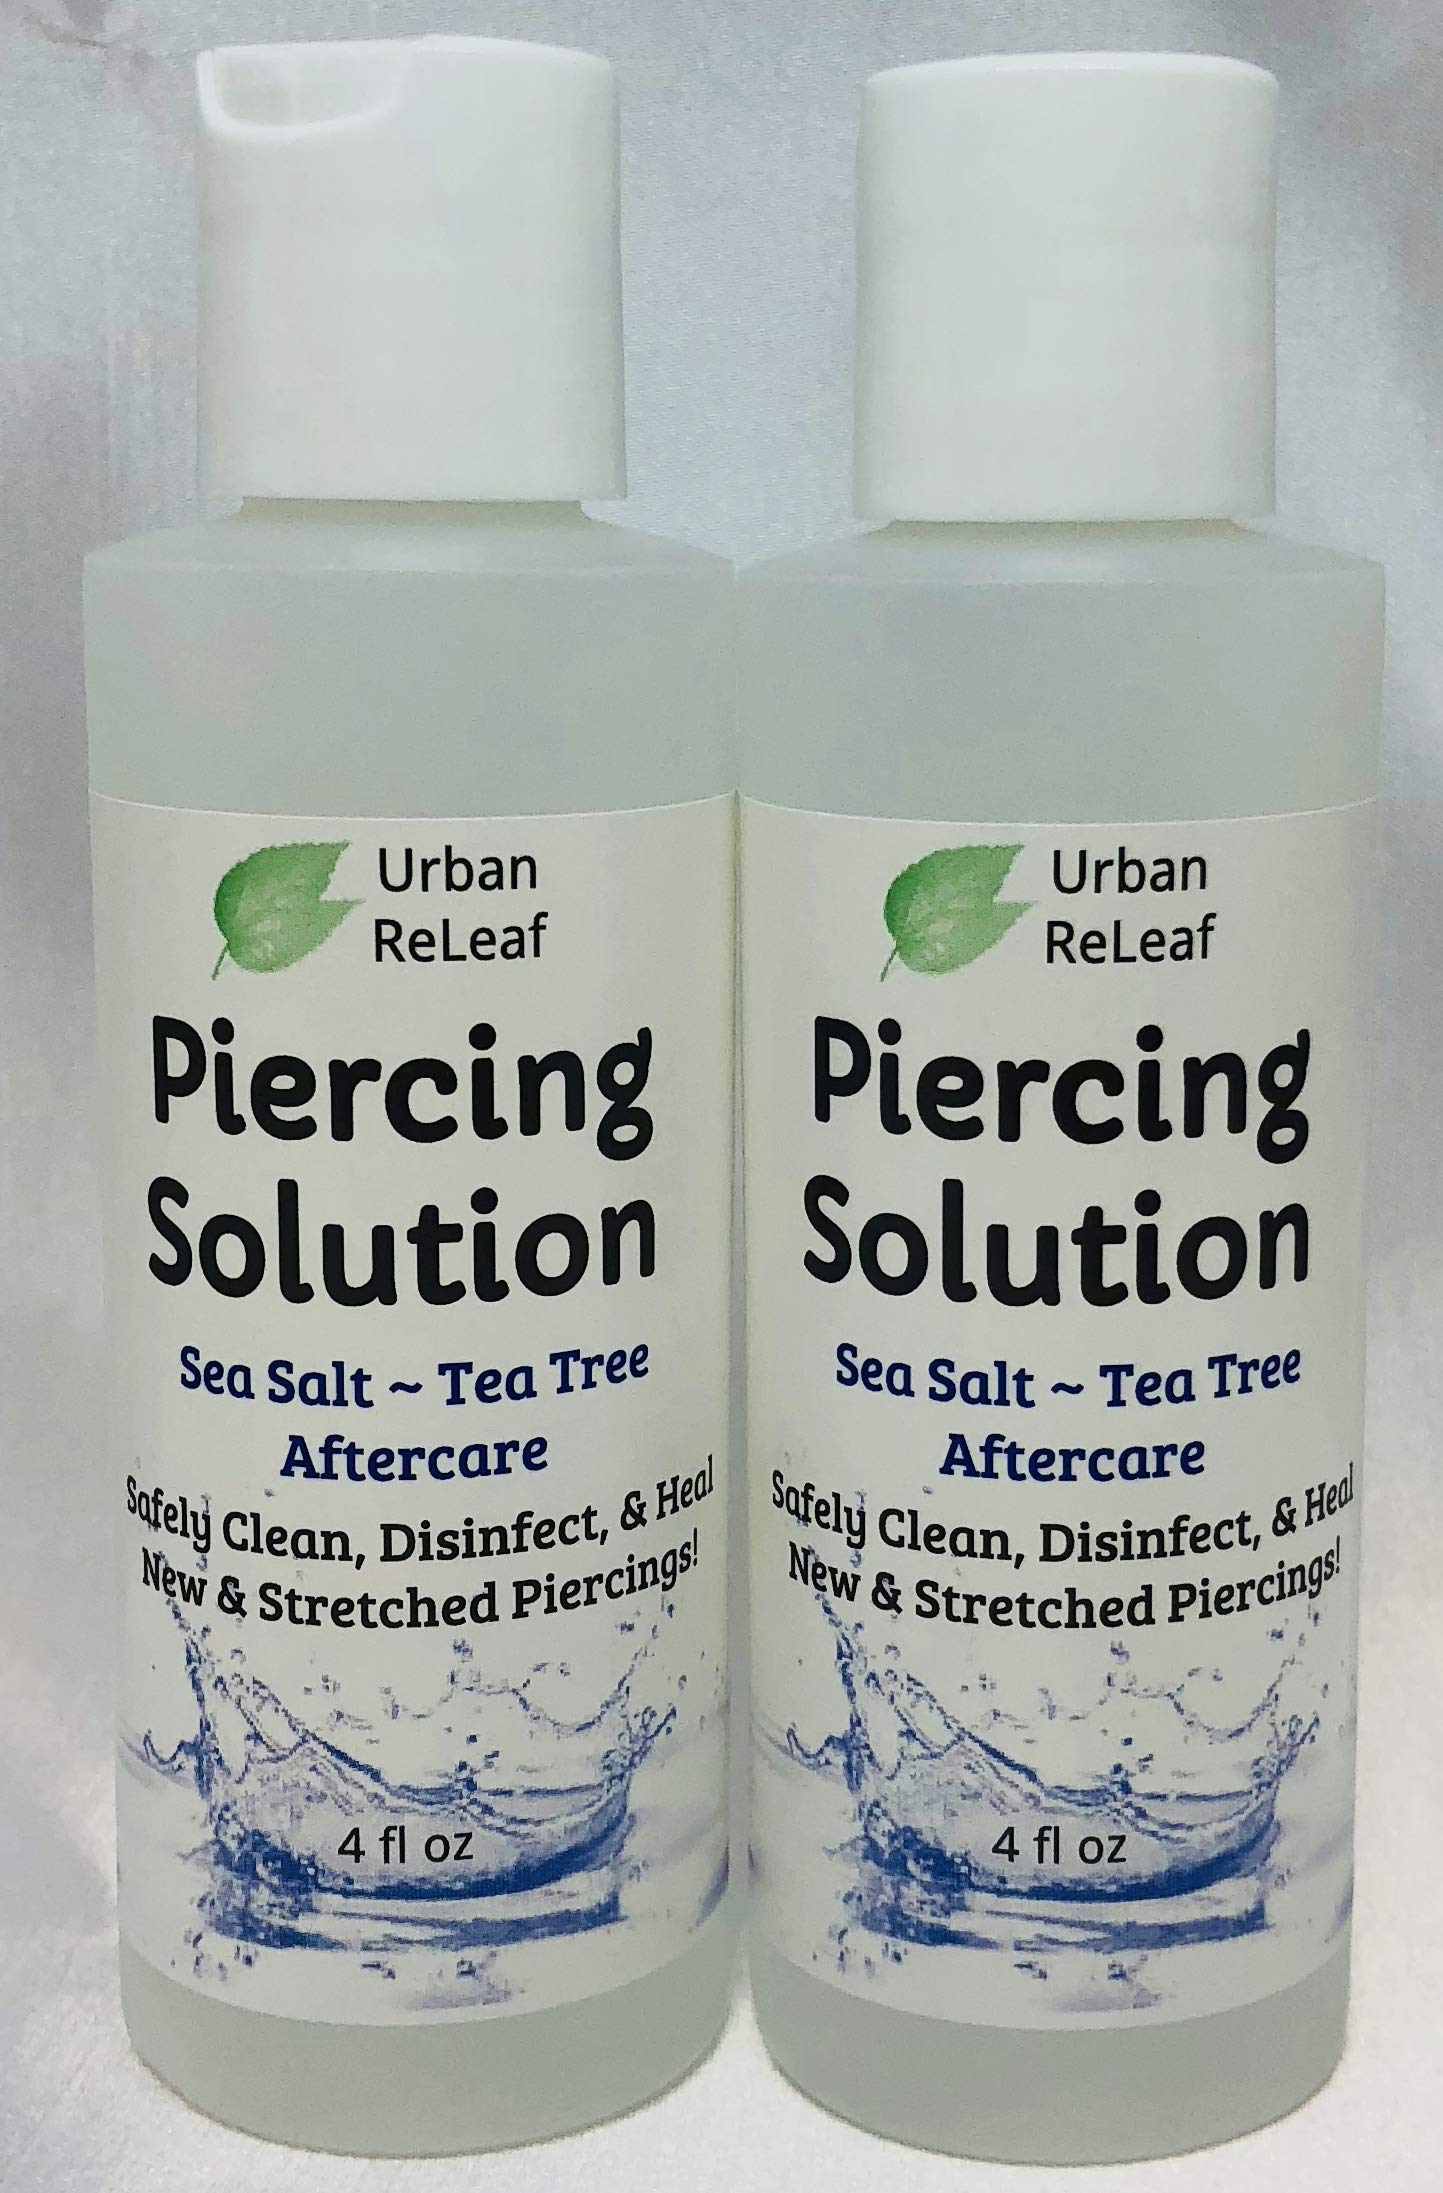 Urban ReLeaf Piercing Solution 8 oz! Healing Sea Salts & Botanical AFTERCARE. Safely Clean, Heal New & Stretched Piercings. Gentle ~ Effective ~ 100% Natural. Non-iodized. Vitamin Rich Botanicals! by Urban ReLeaf